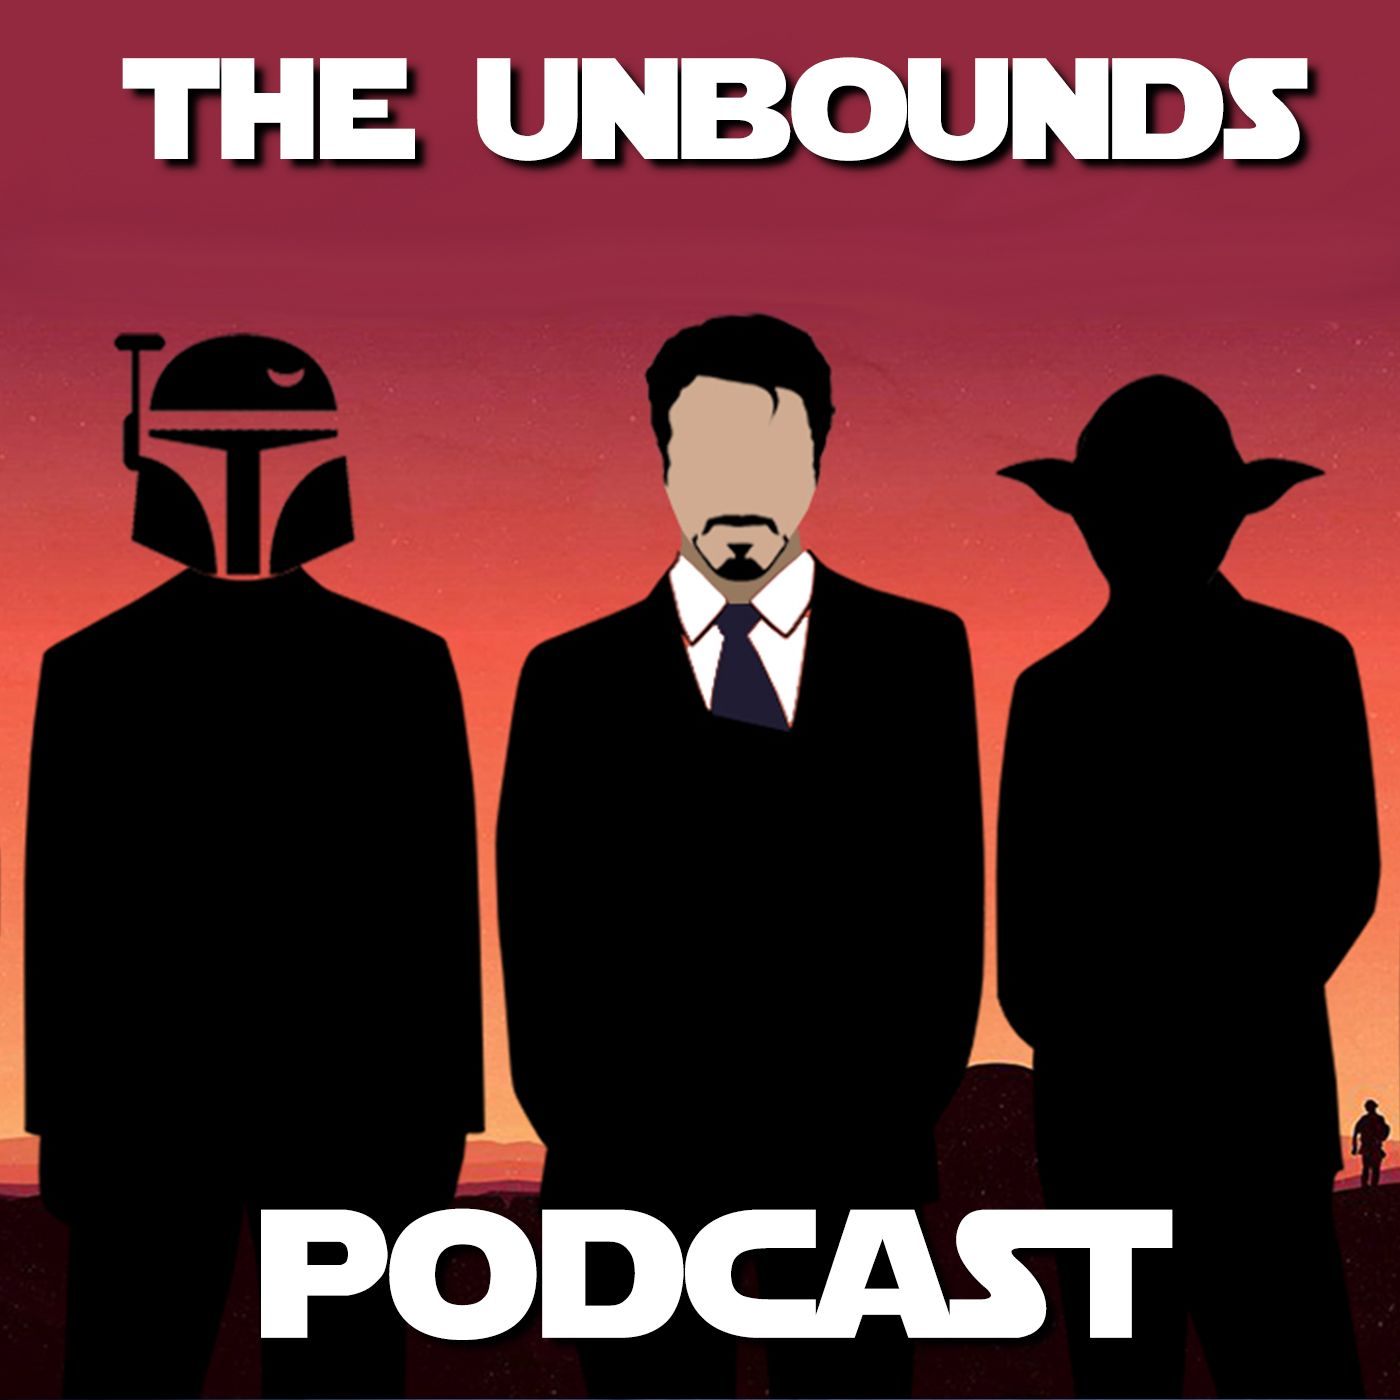 The Unbounds